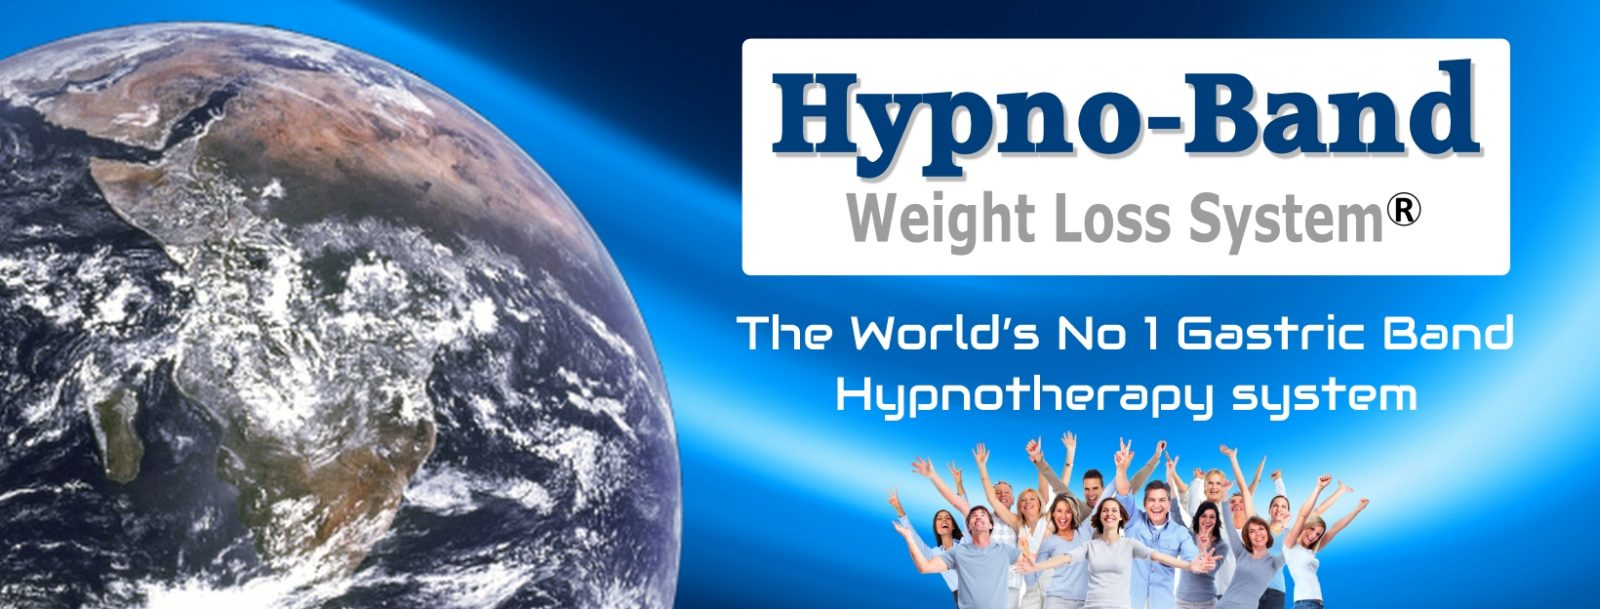 hypno-band facebook page banner